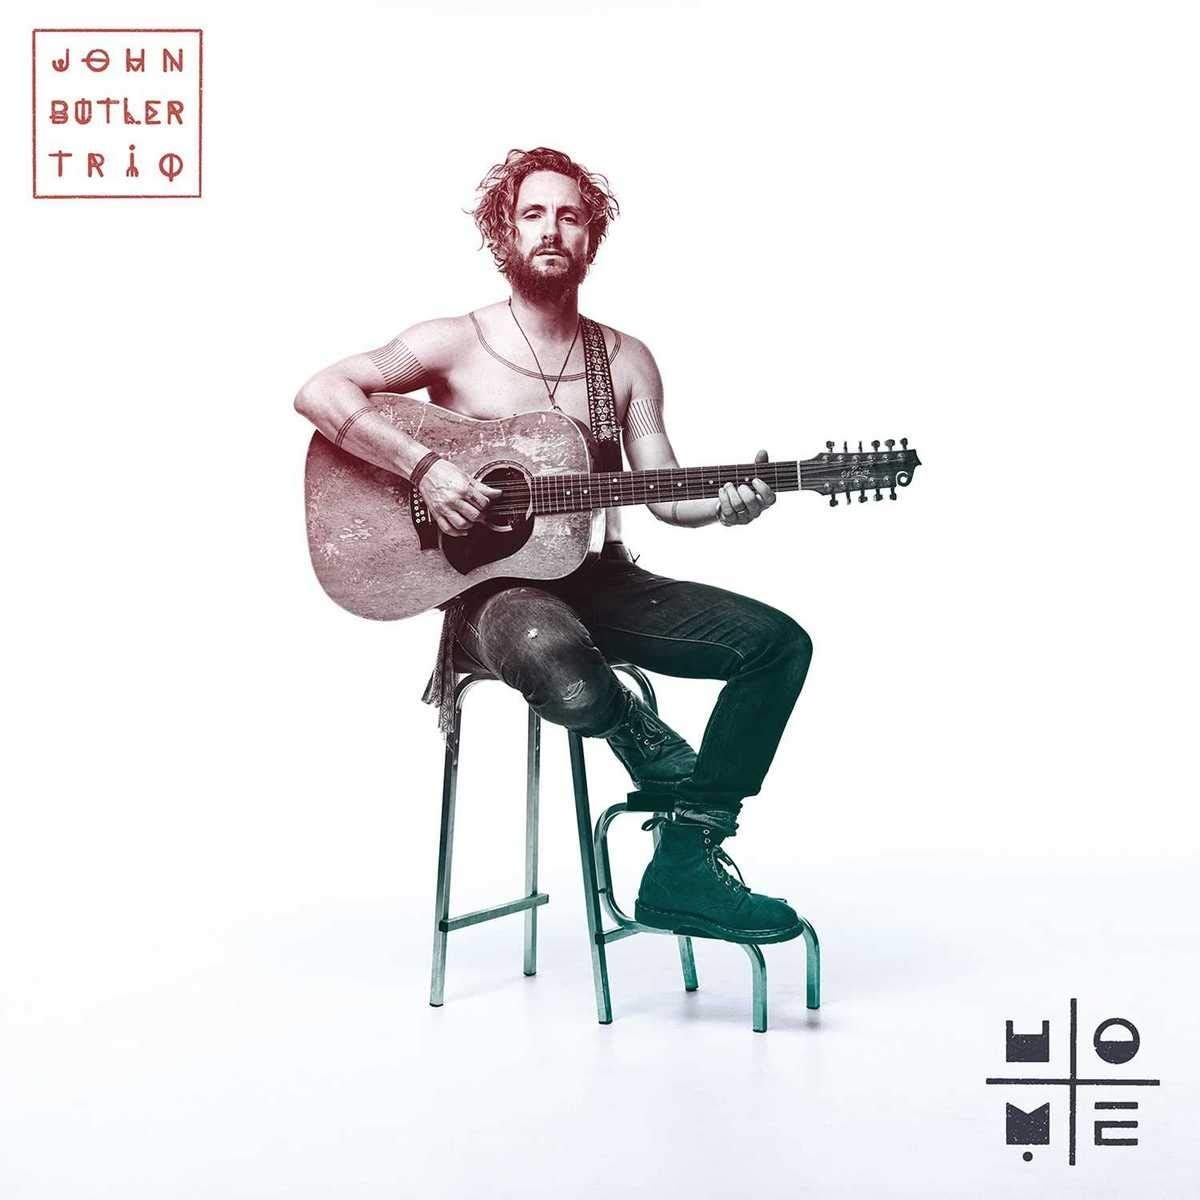 pop 10 18 John Butler Trio 28 09